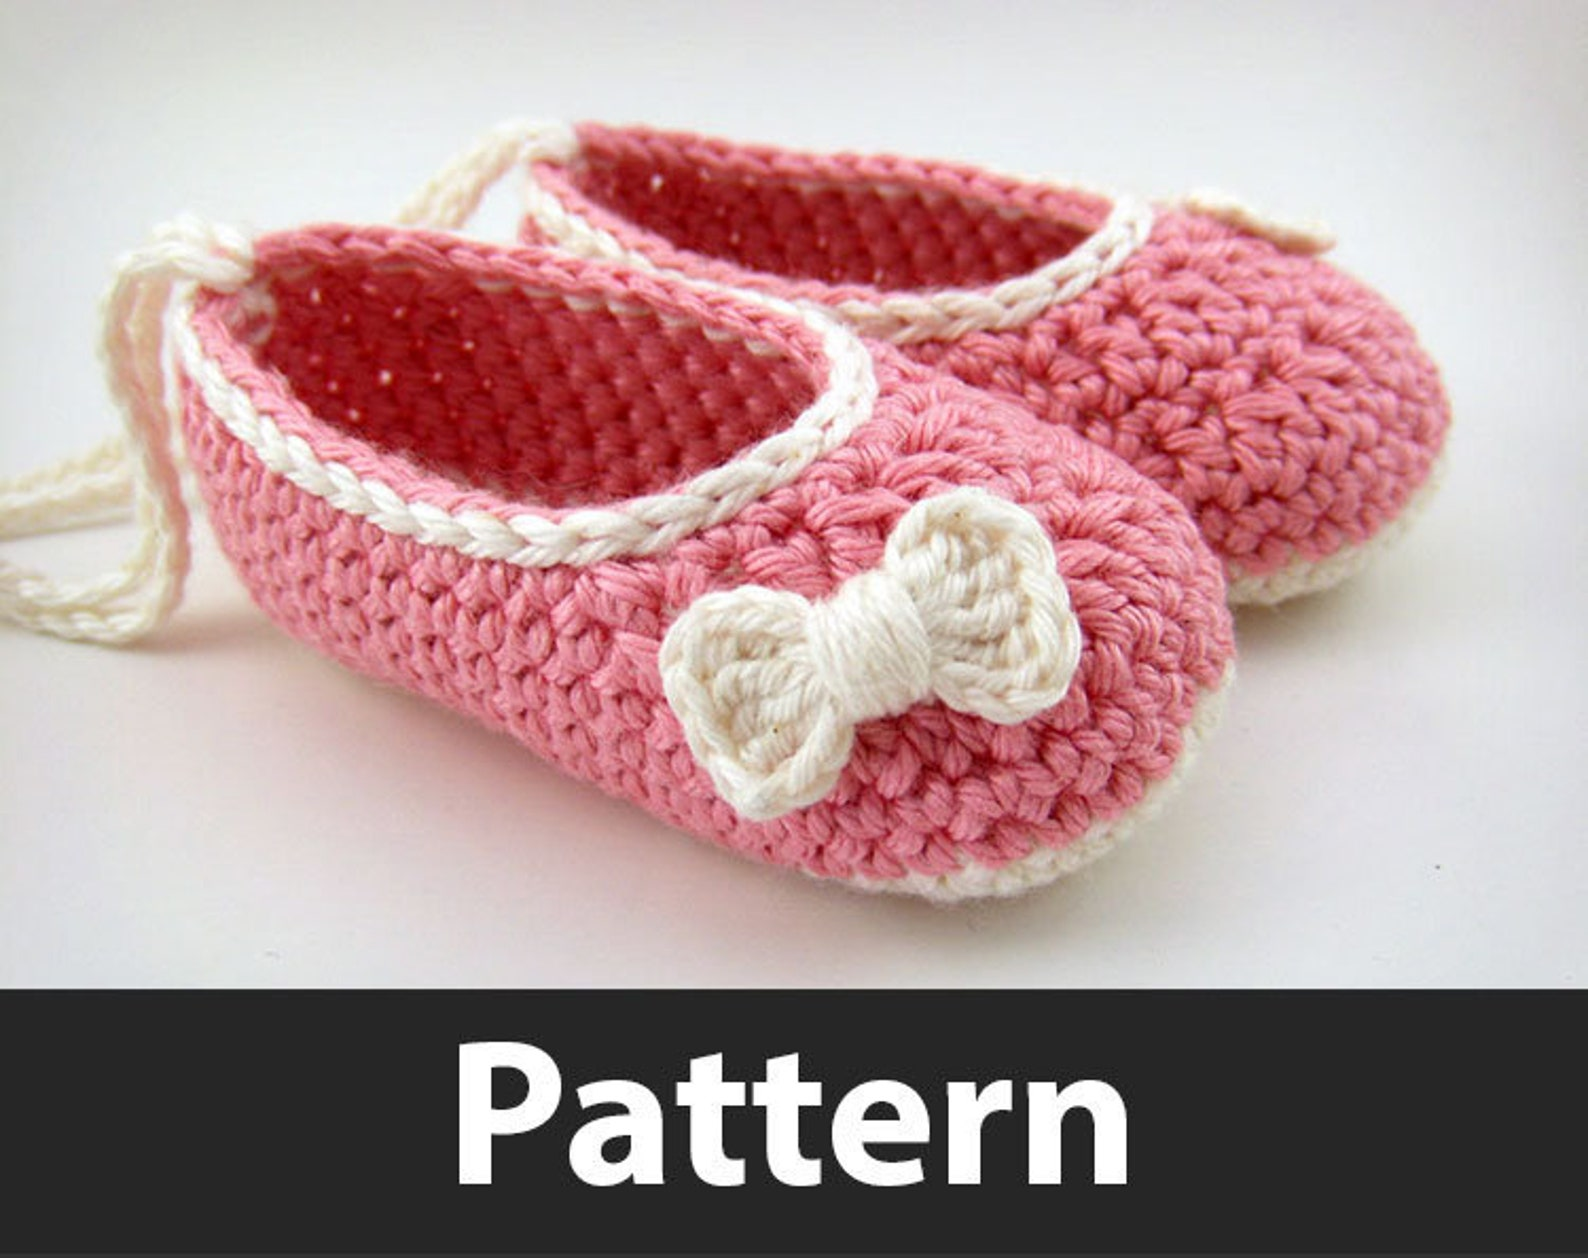 crochet pattern - baby ballet flats and mini crochet bows